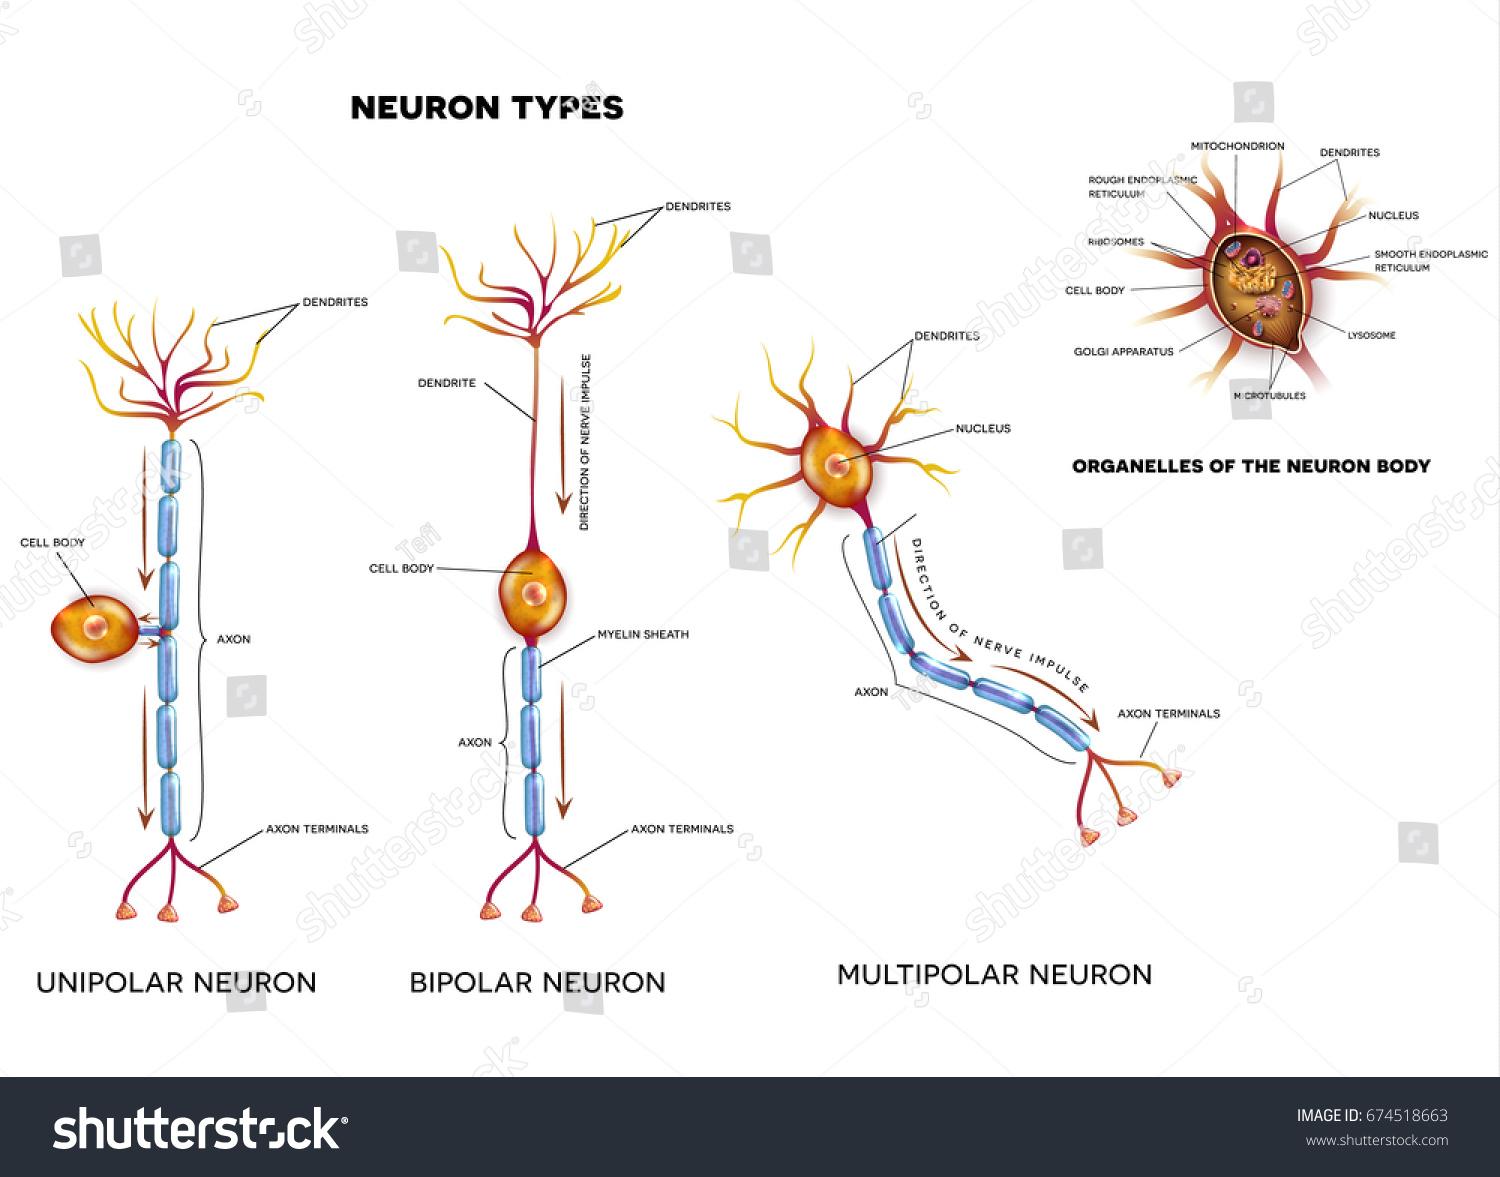 Nerve Cell Types Organelles Cell Body Stock Illustration 674518663